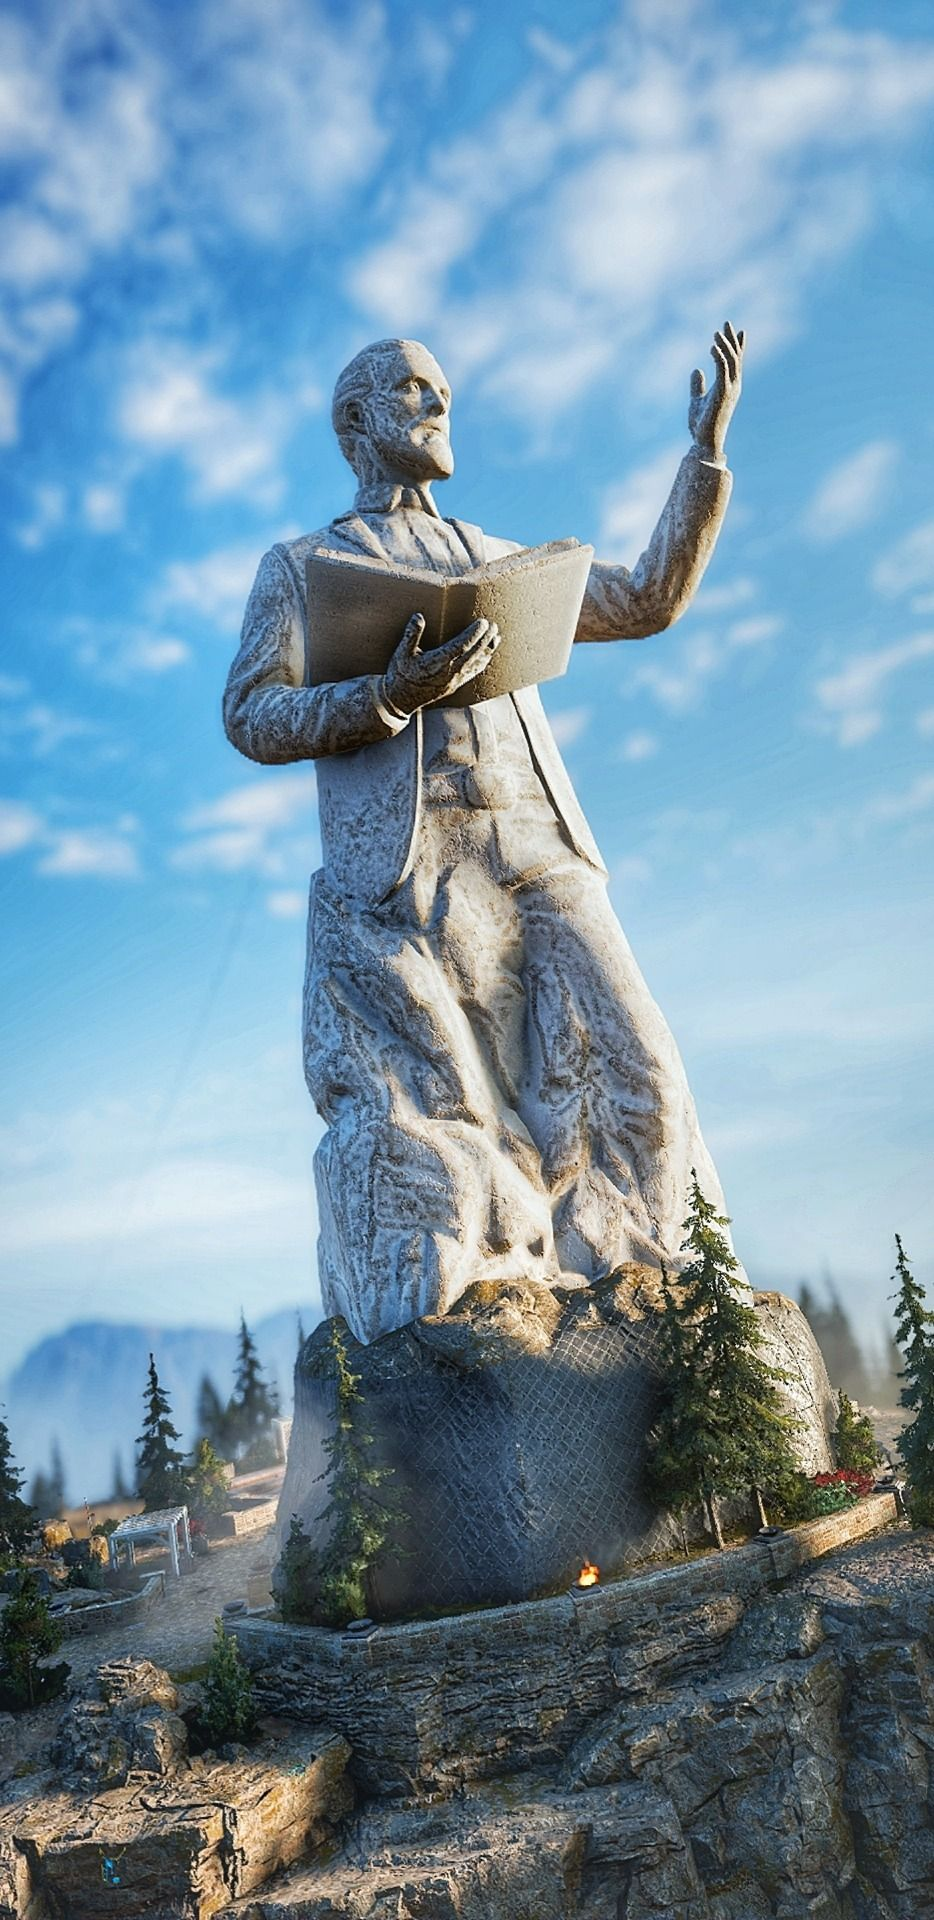 Pin By Paulus Calvin On Plague Far Cry 5 Assassin S Creed